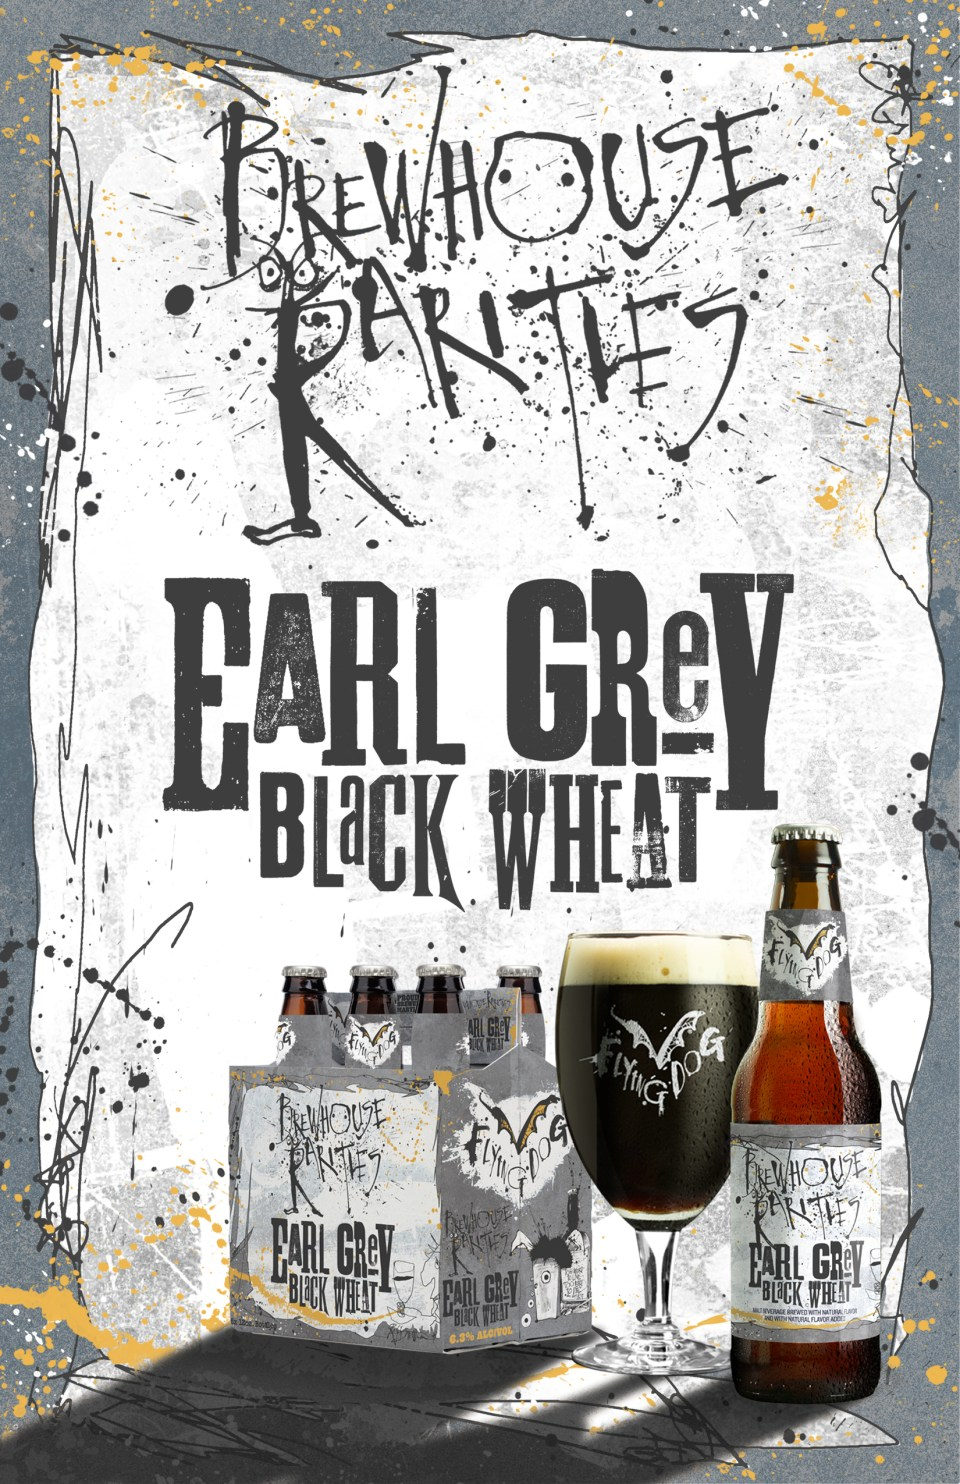 Flying Dog Brewhouse Rarities Earl Grey Black Wheat